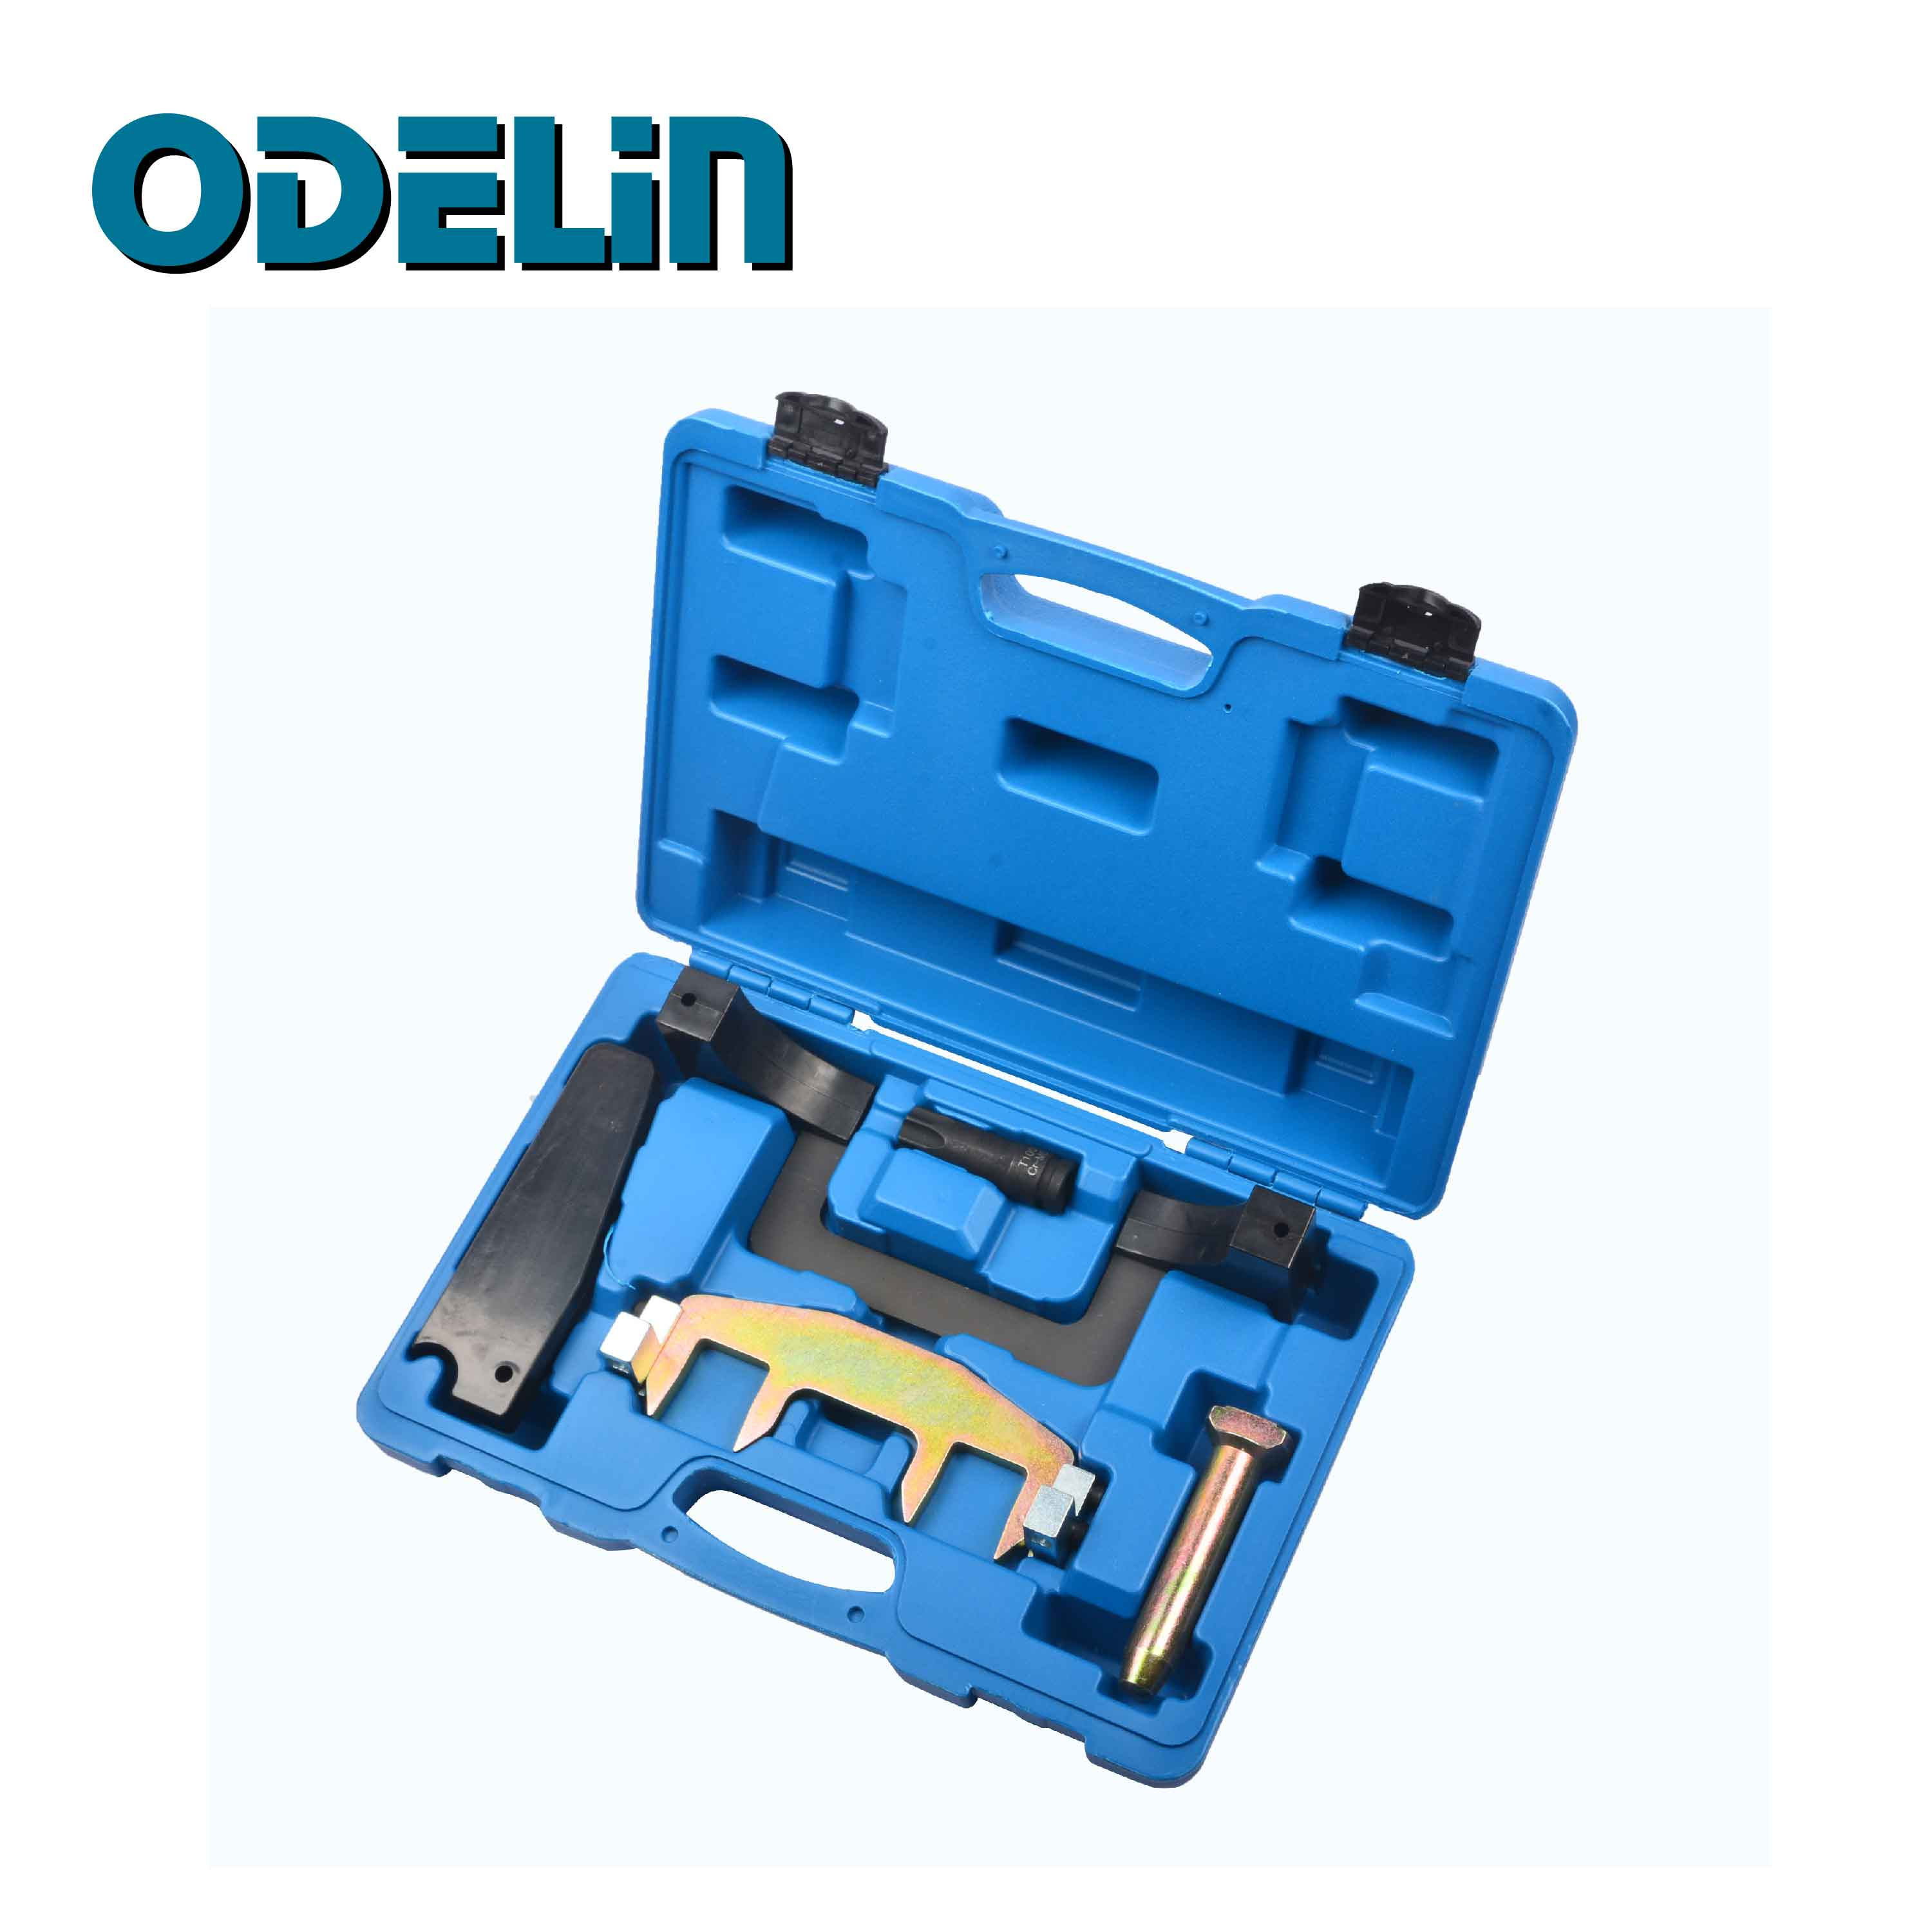 Chain Driven Camshaft Alignment Timing Locking Tool Kit for Mercedes Benz M271 1.8 Timing Tool Set